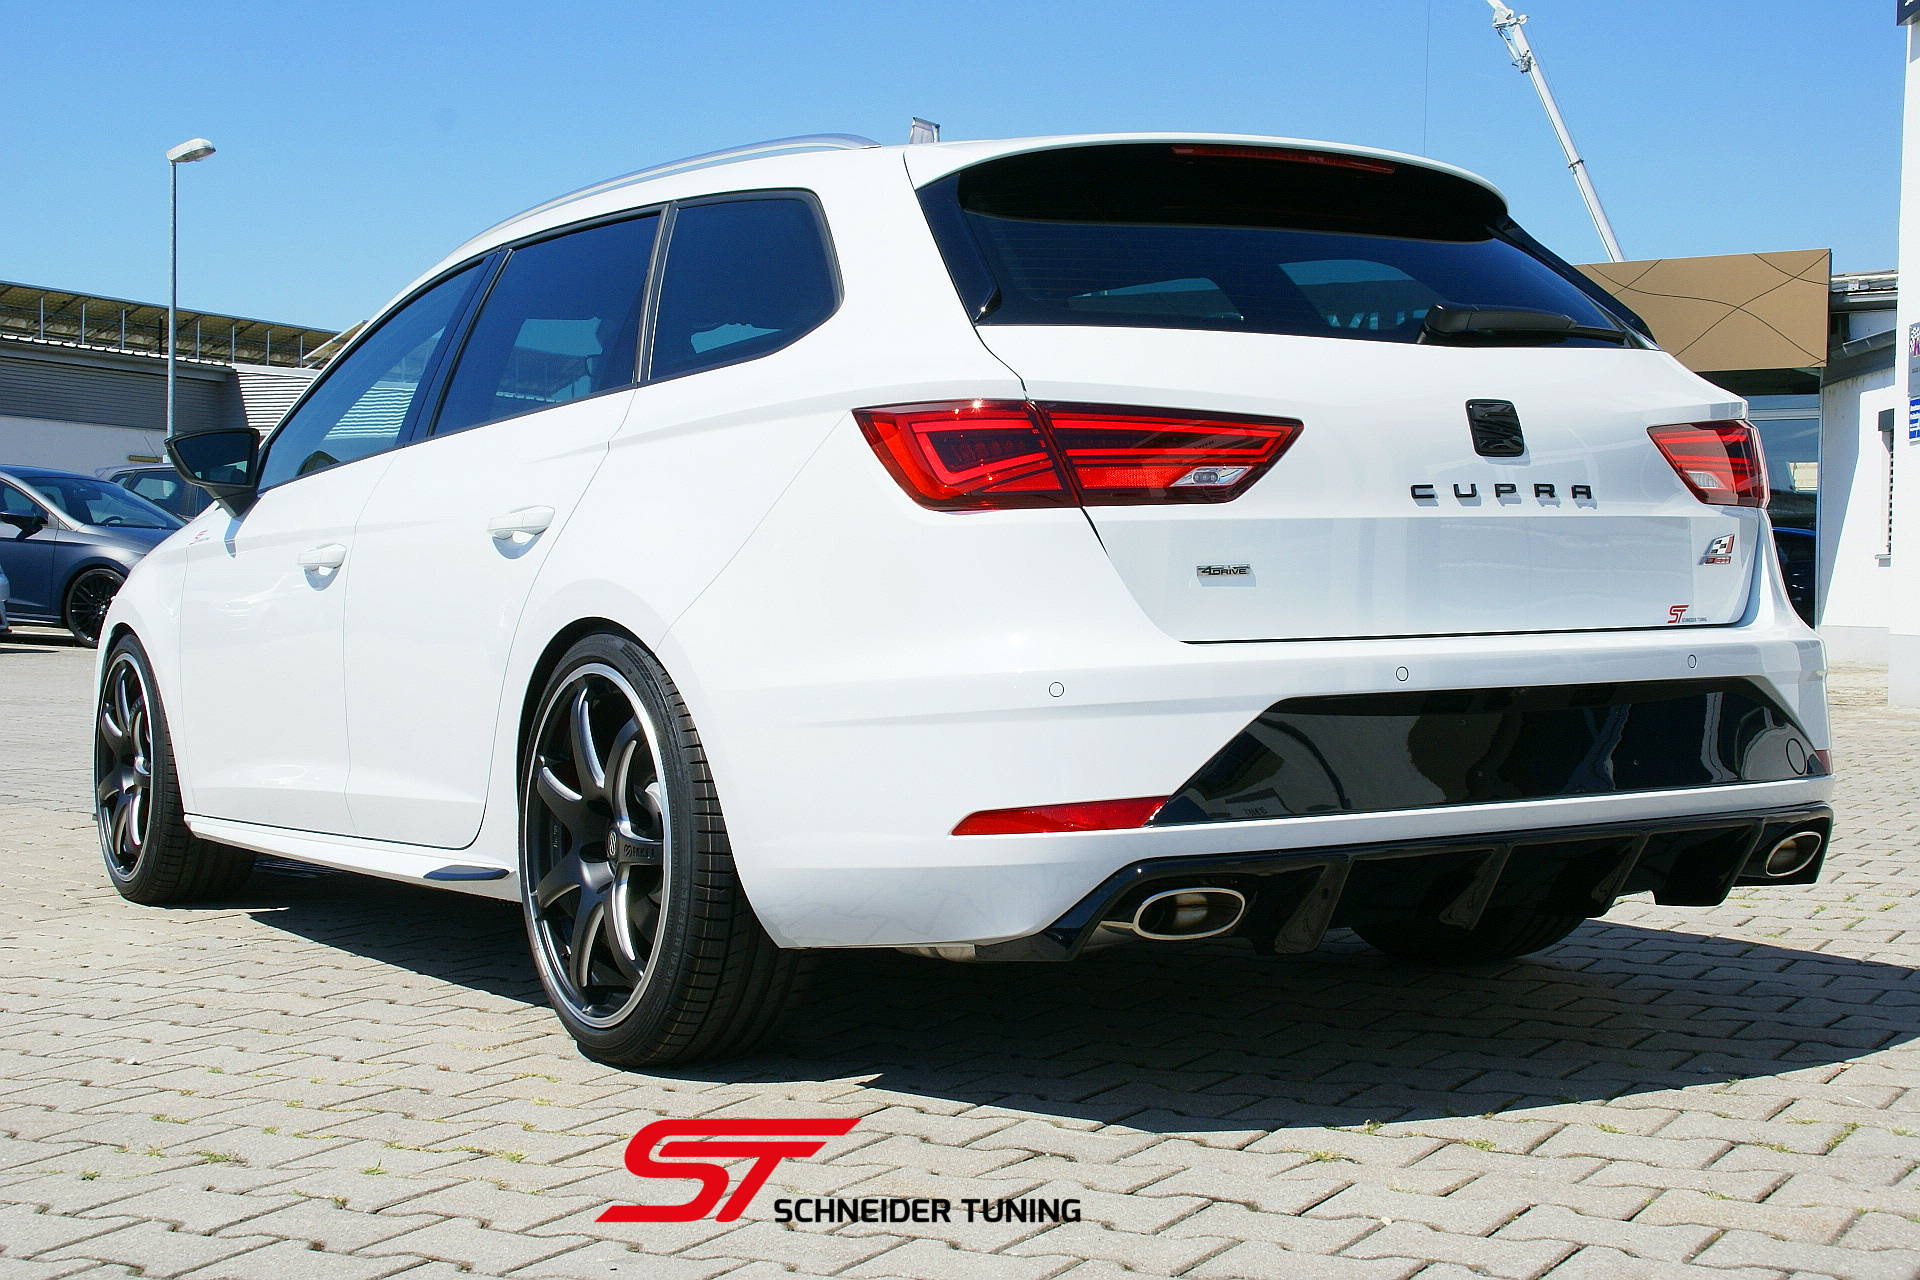 seat leon cupra st 300 allrad schneider tuning. Black Bedroom Furniture Sets. Home Design Ideas